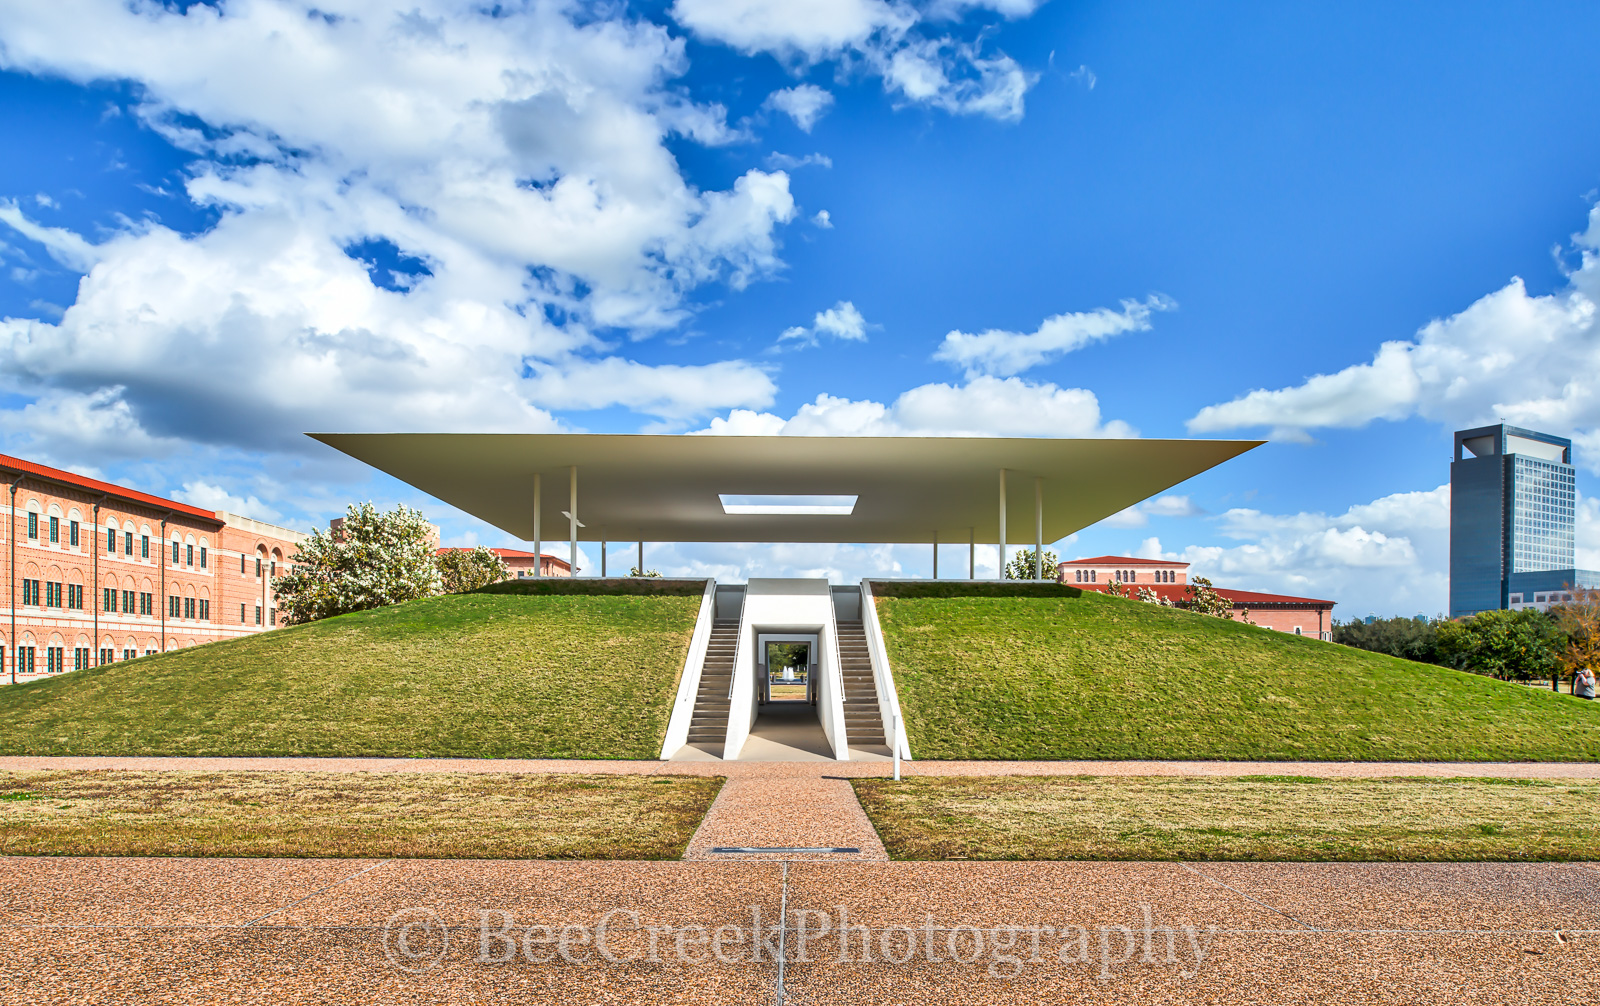 Herman Park, Houston, Houston centennial pavillion, Houston cityscape, James Turrell Skyspace, Medical Center, Rice, Rice University, city, cityscape, photo